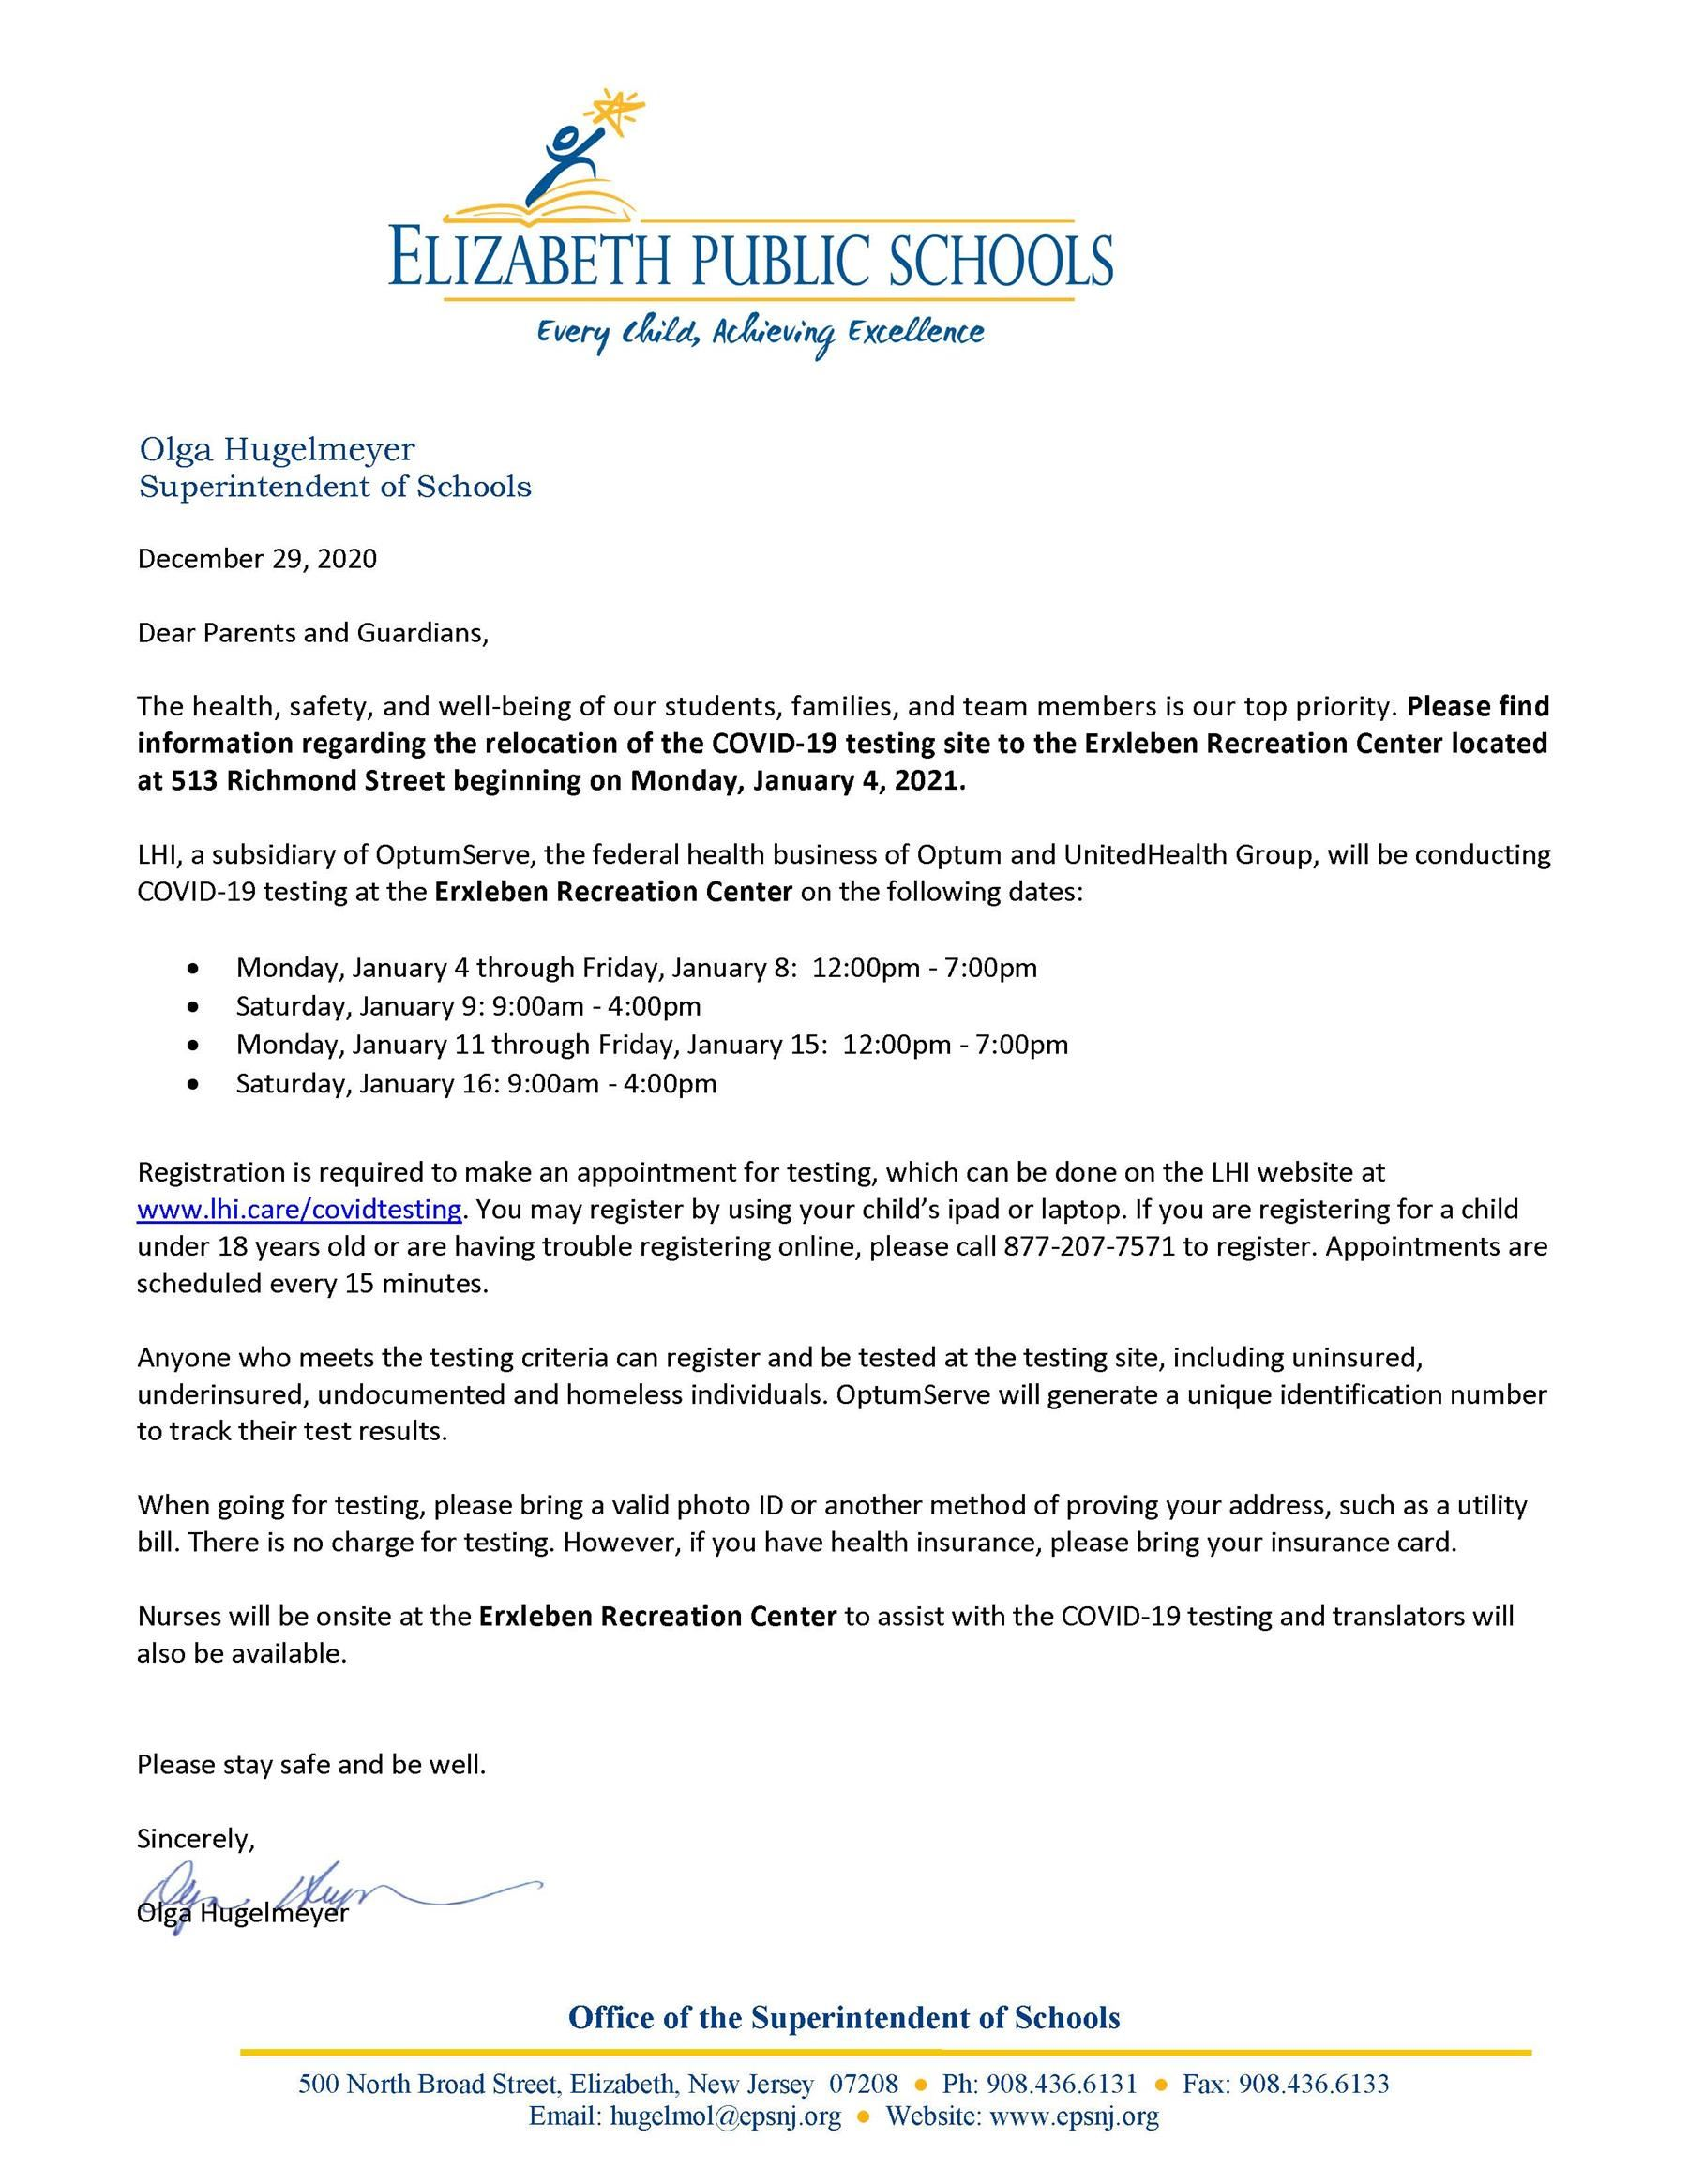 Letter to Parents-Guardians- COVID Testing Extended New Site the Erxleben Recreation Center